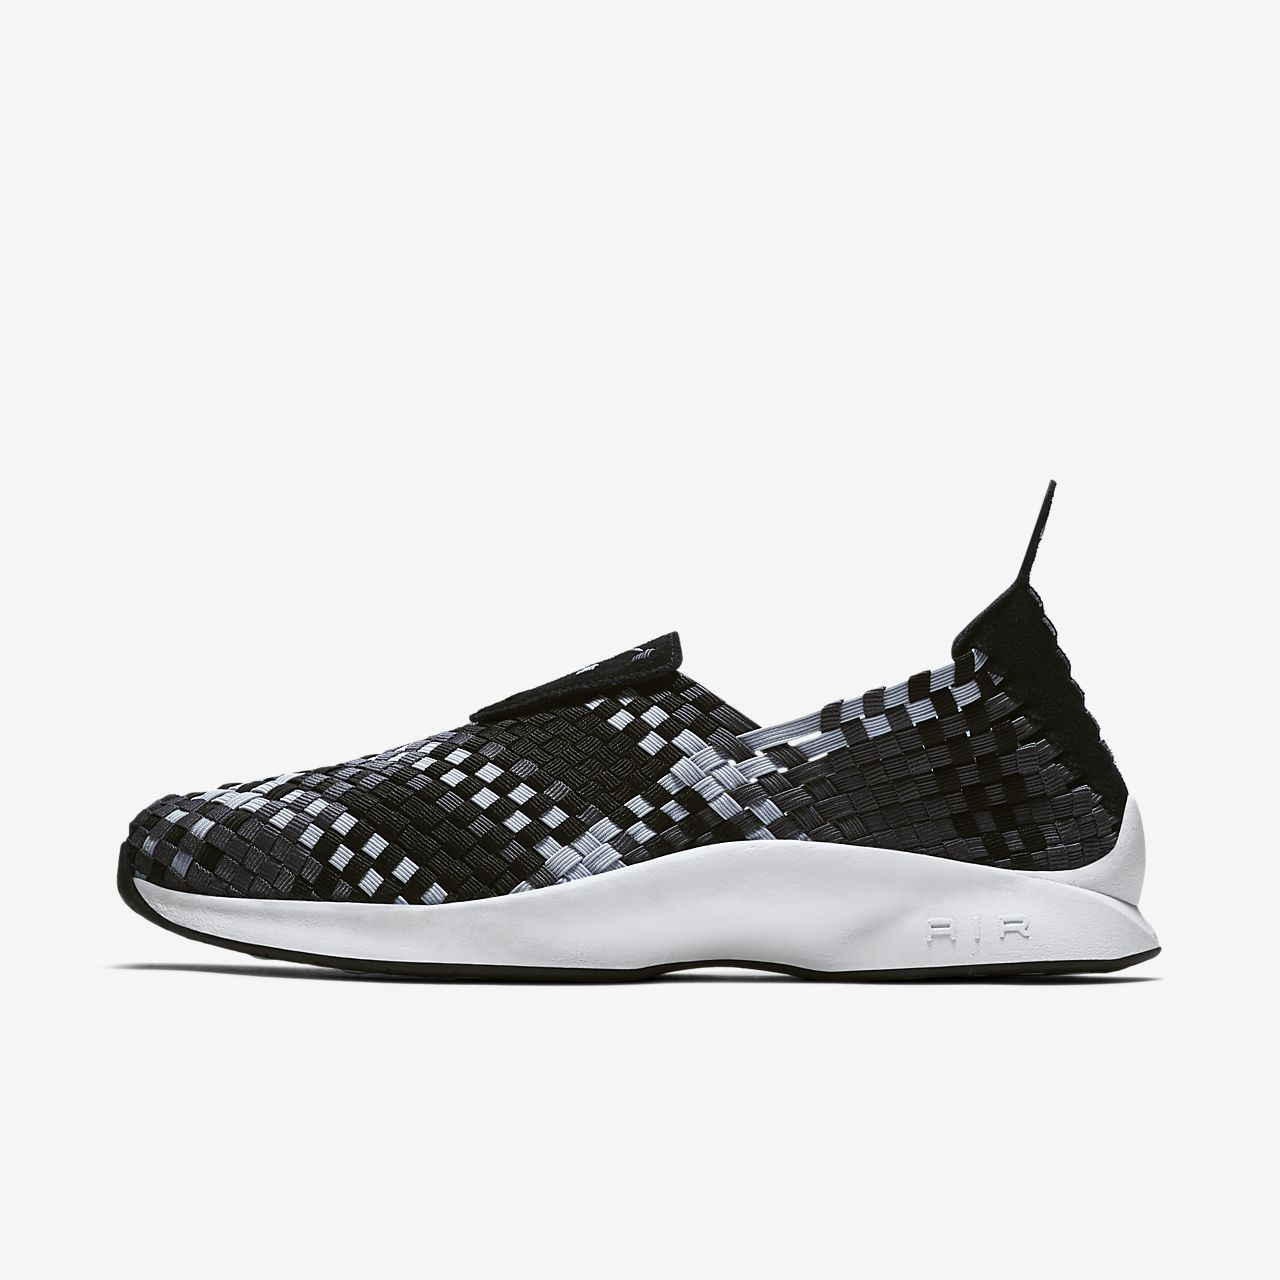 timeless design 3160a e9aaa ... Chaussure Nike Air Woven pour Homme